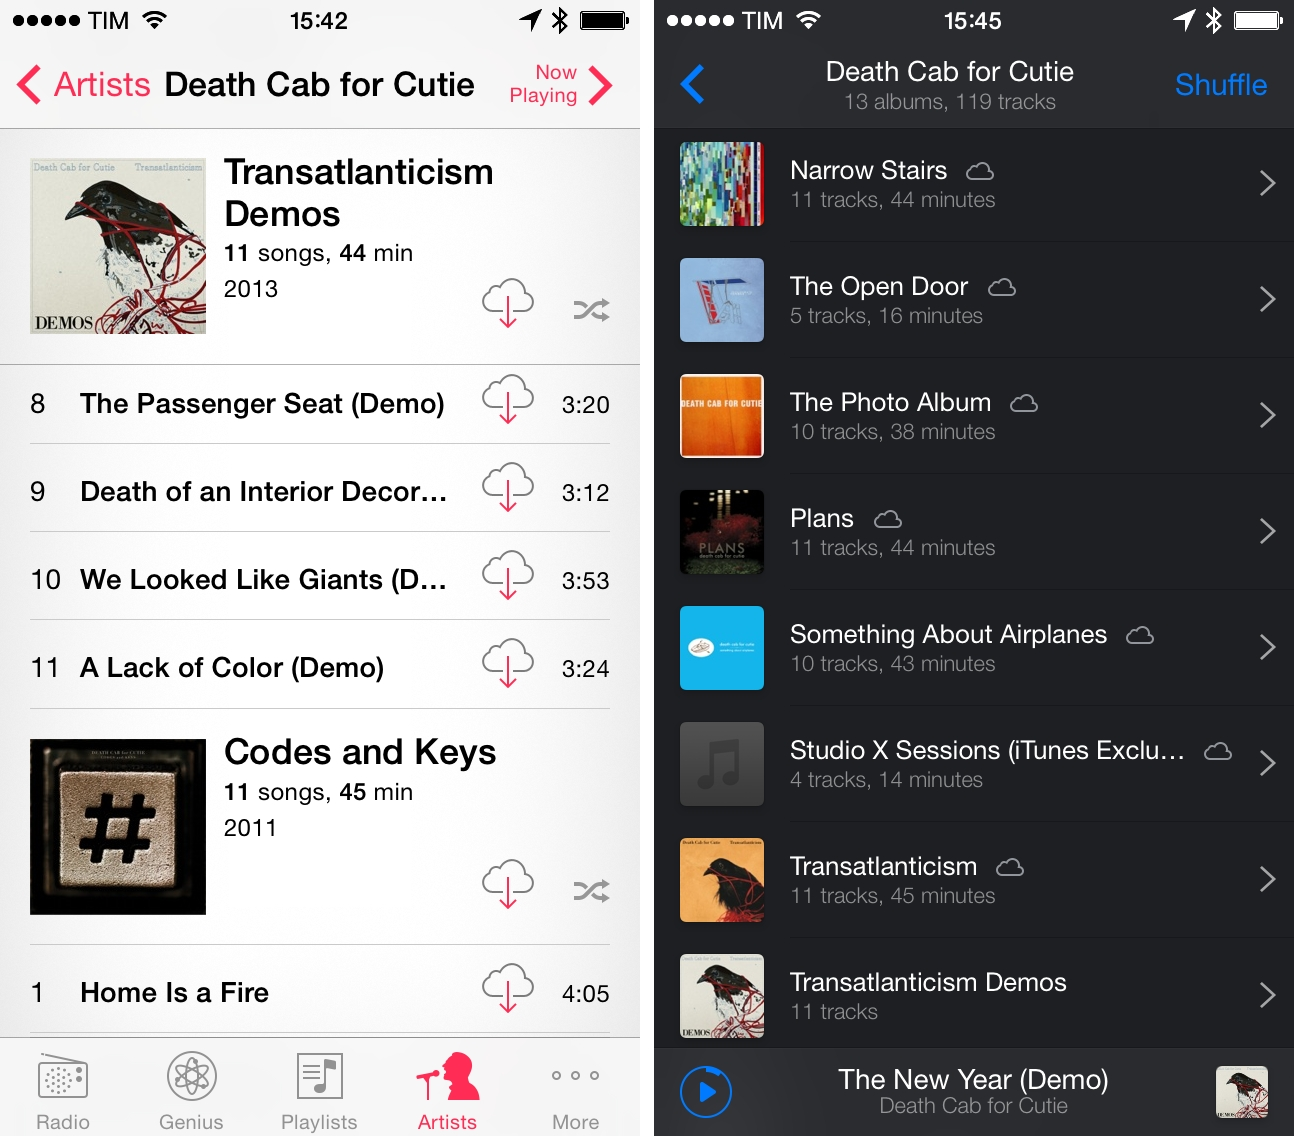 Ecoute for iPhone (right) provides a compact visualization of an artist's albums.